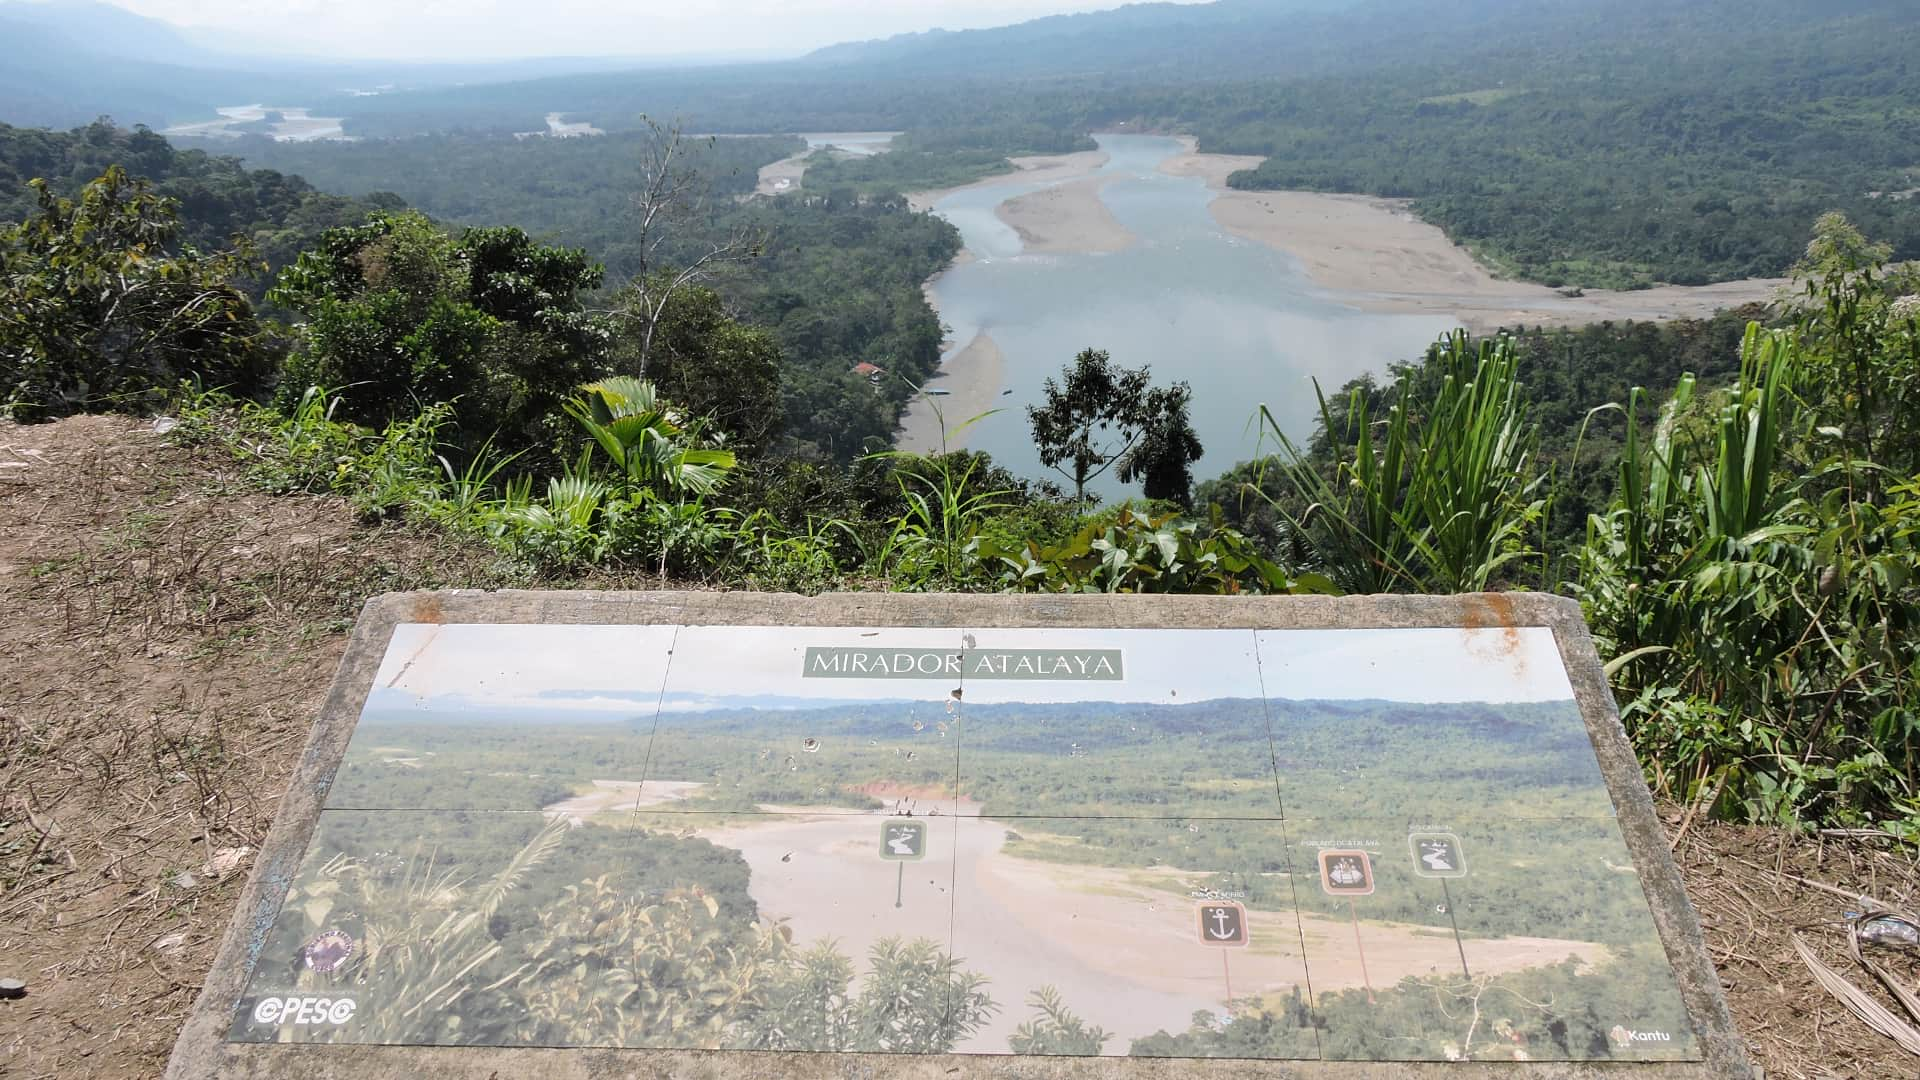 11beautiful view of the Manu jungle from the Atalaya lookout point | Responsible Travel Peru